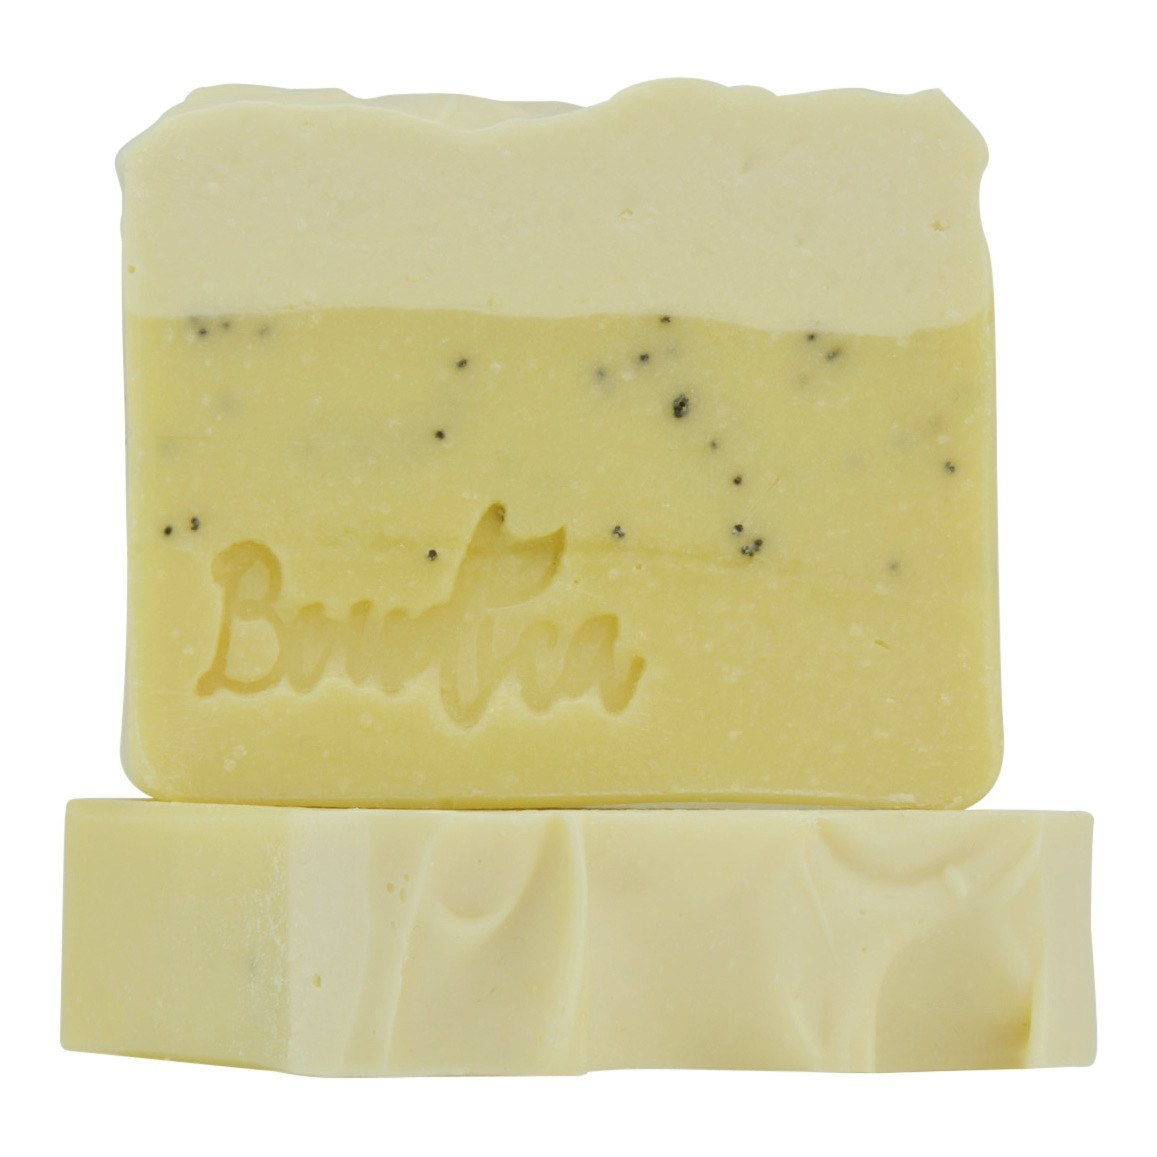 Lemon Blooms soap, gift packaging - Boudica Body Care